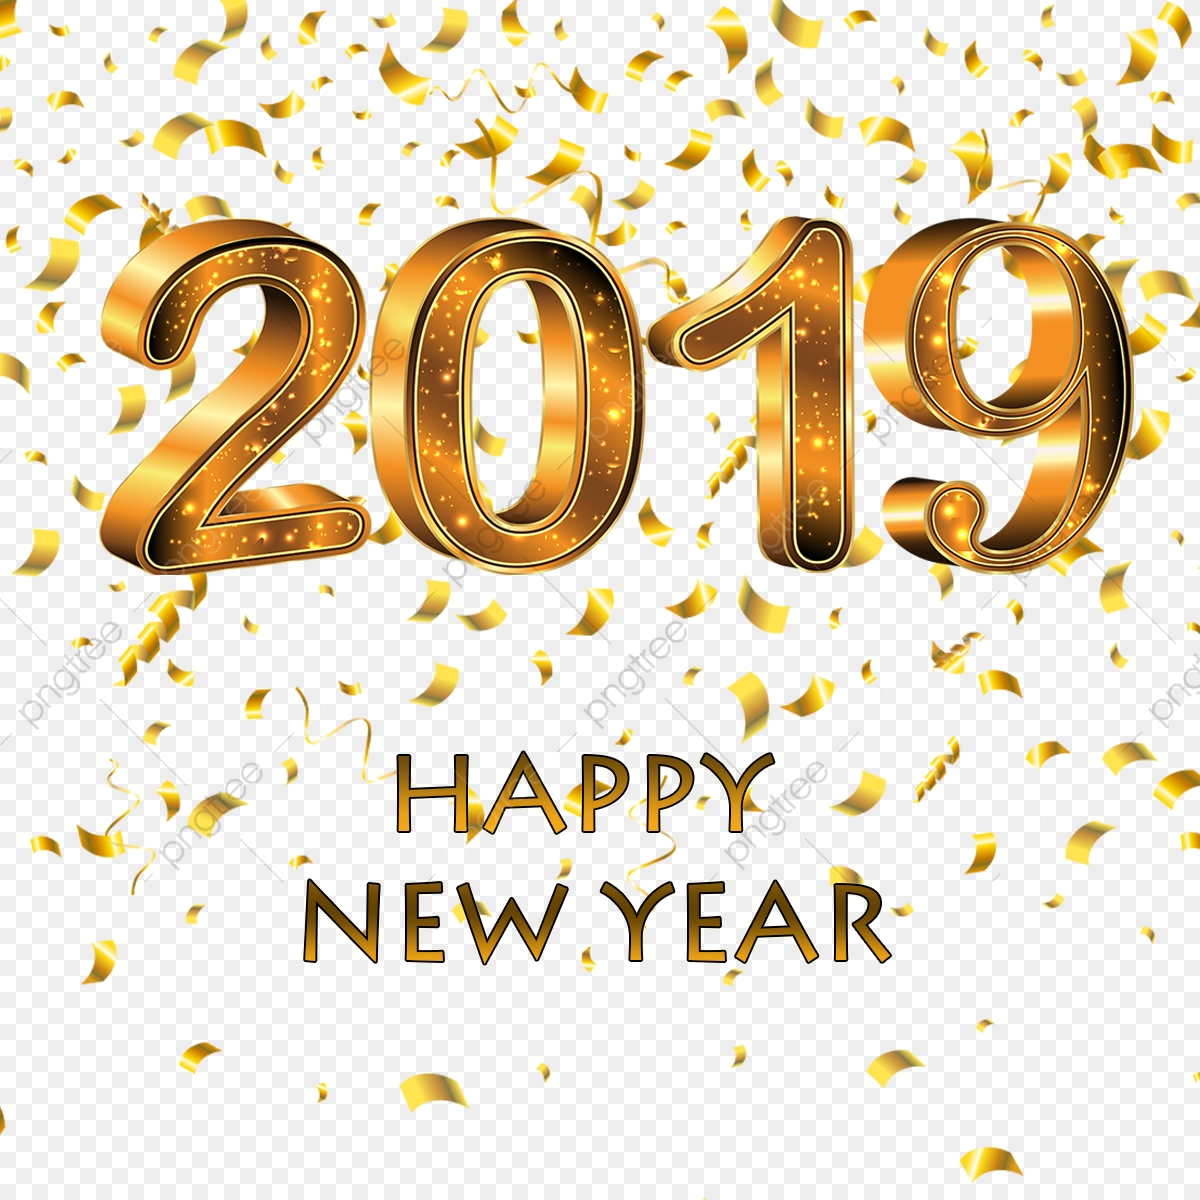 Happy New Year Png Images 4